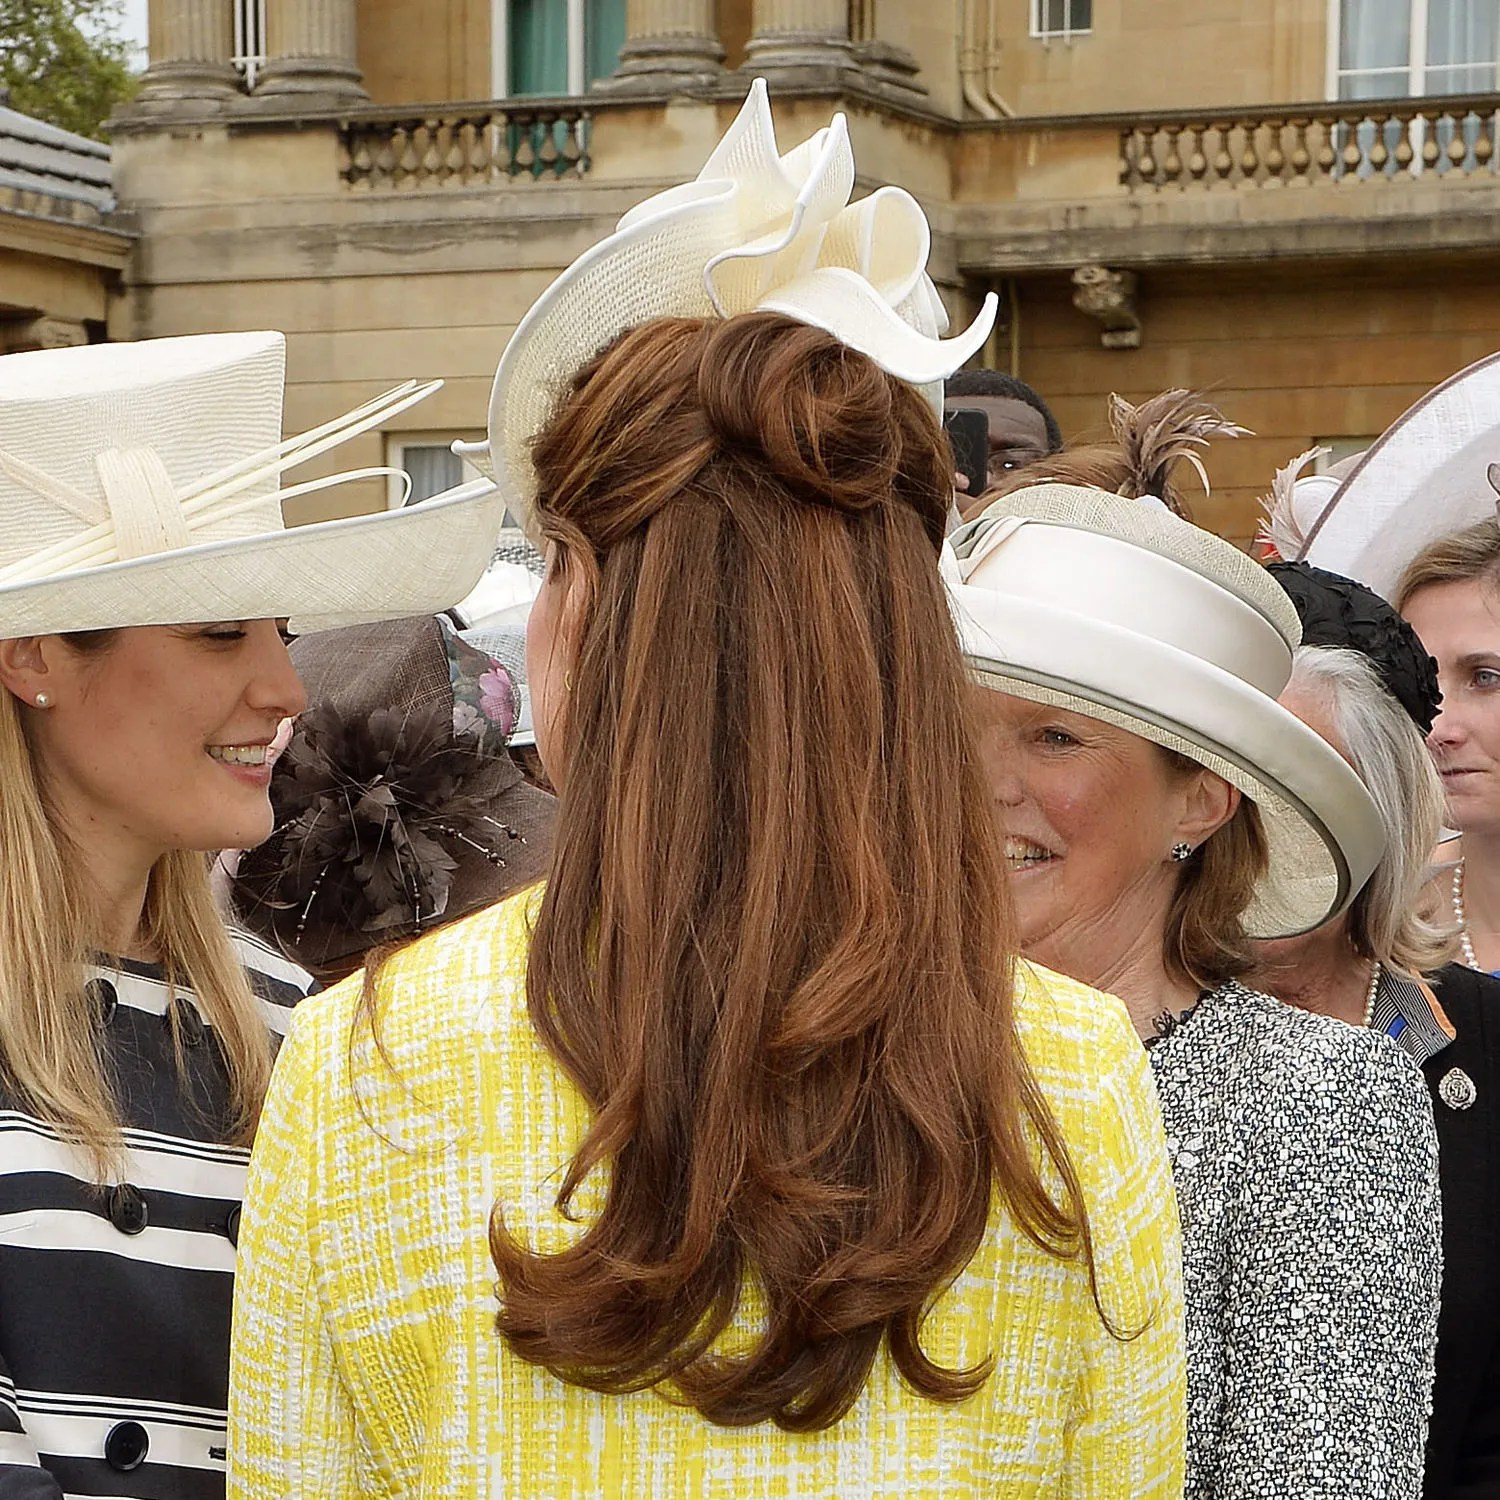 3 Hat Hair Combos To Steal From Kate Middleton For The